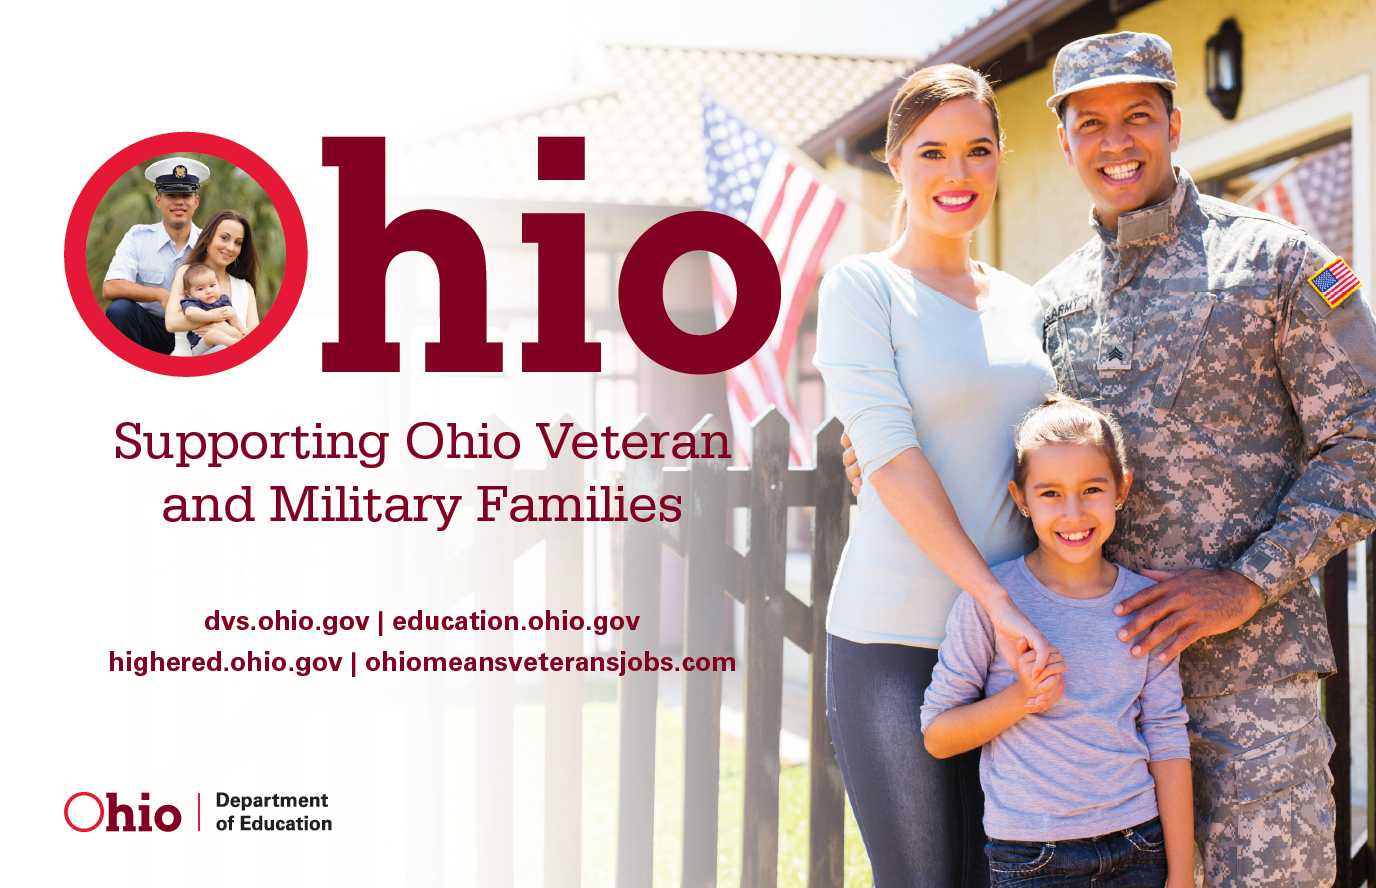 Touching congratulations to veterans